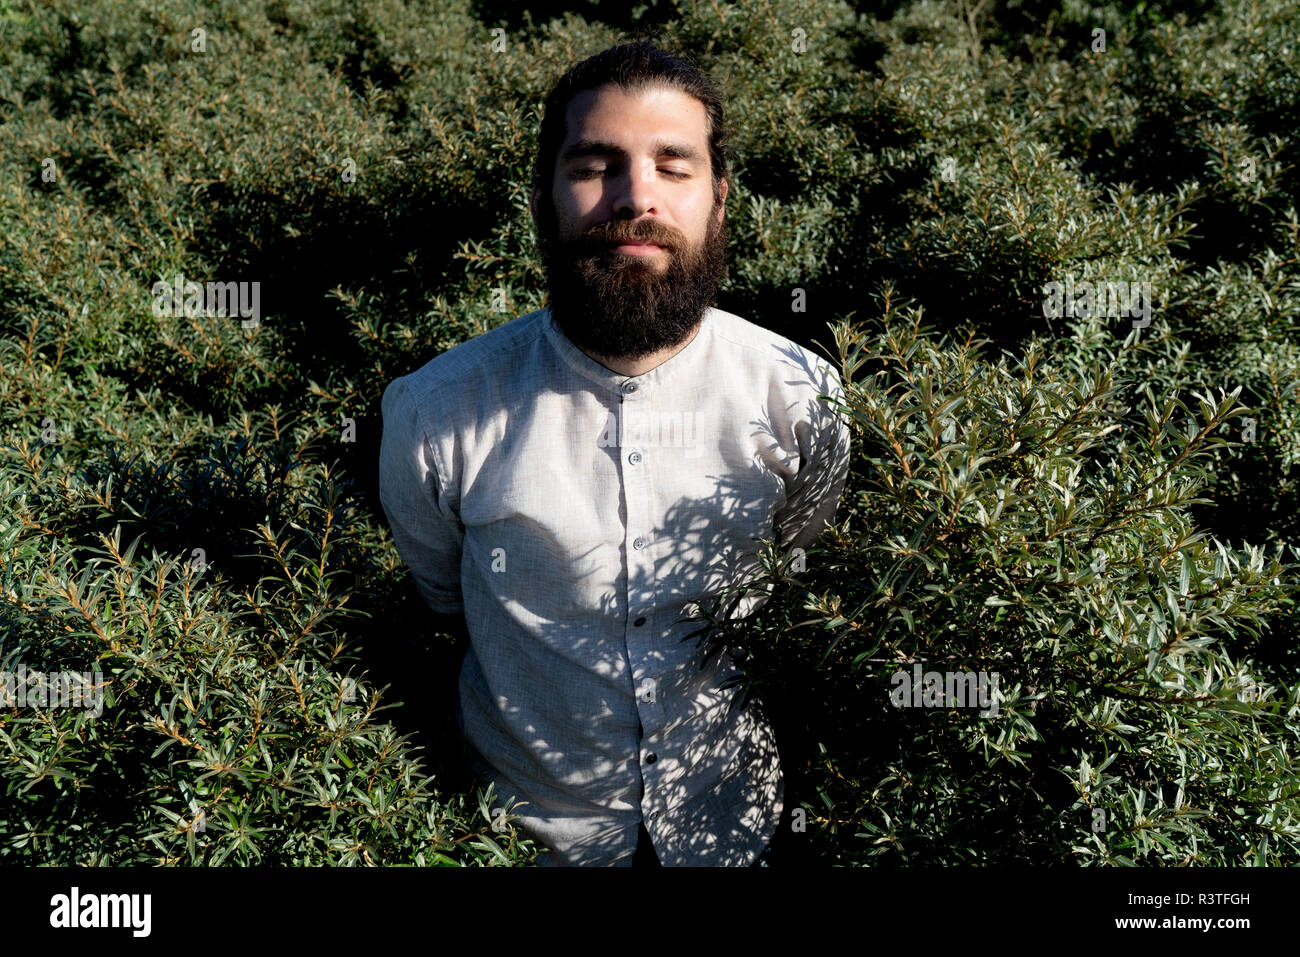 Young mna standing in shrubbery, enjoying the sun - Stock Image